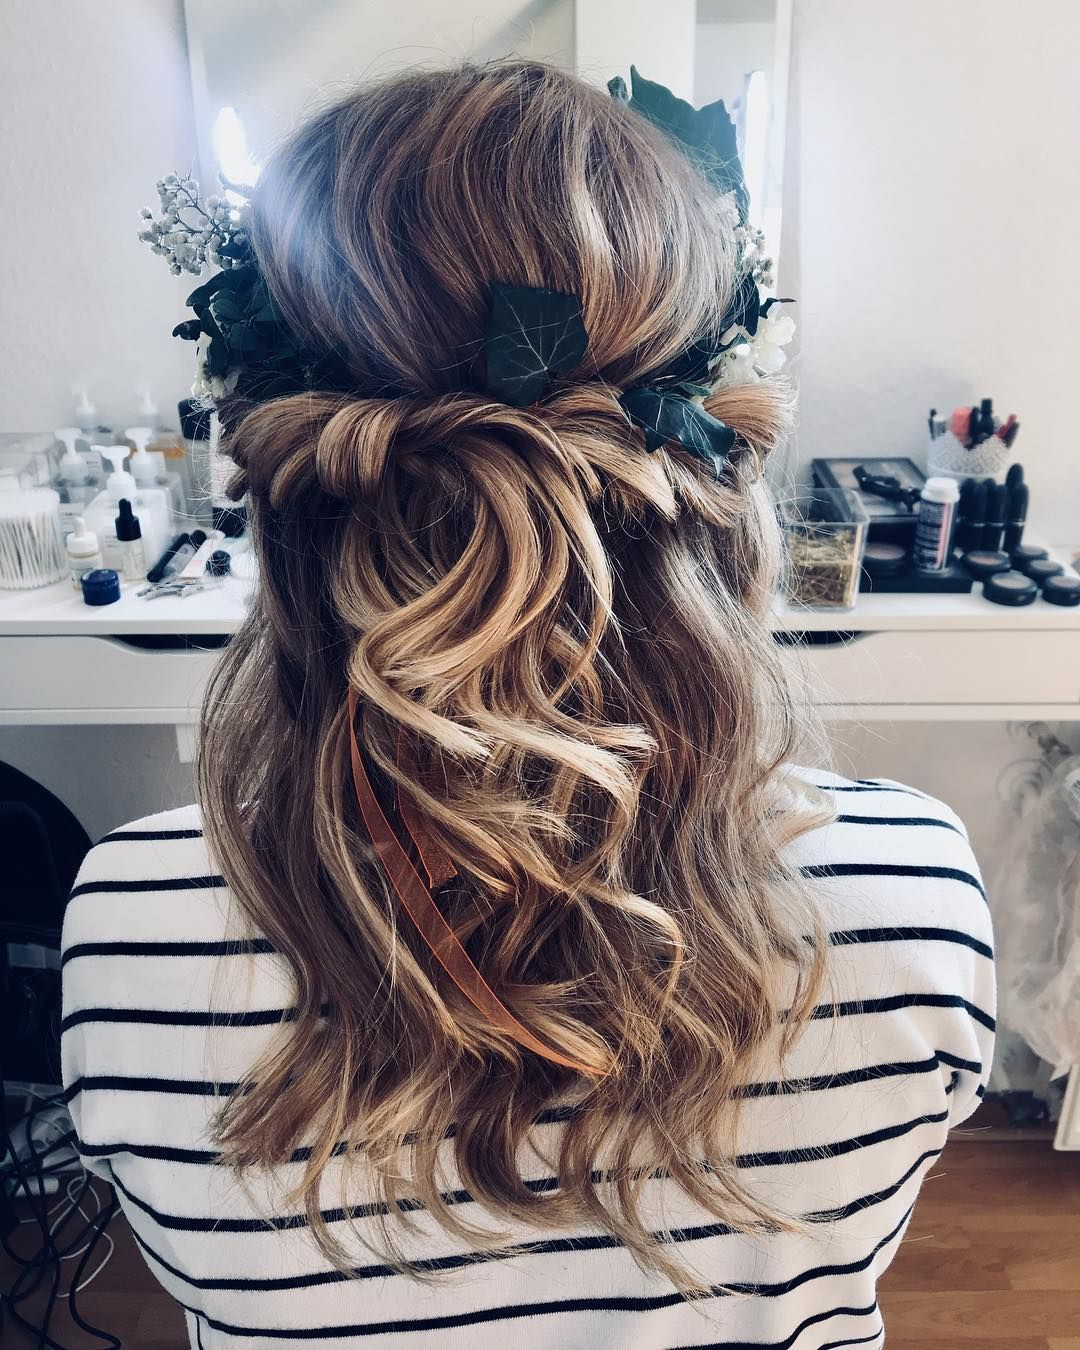 Gorgeous half up half down wedding hairstyle ideas